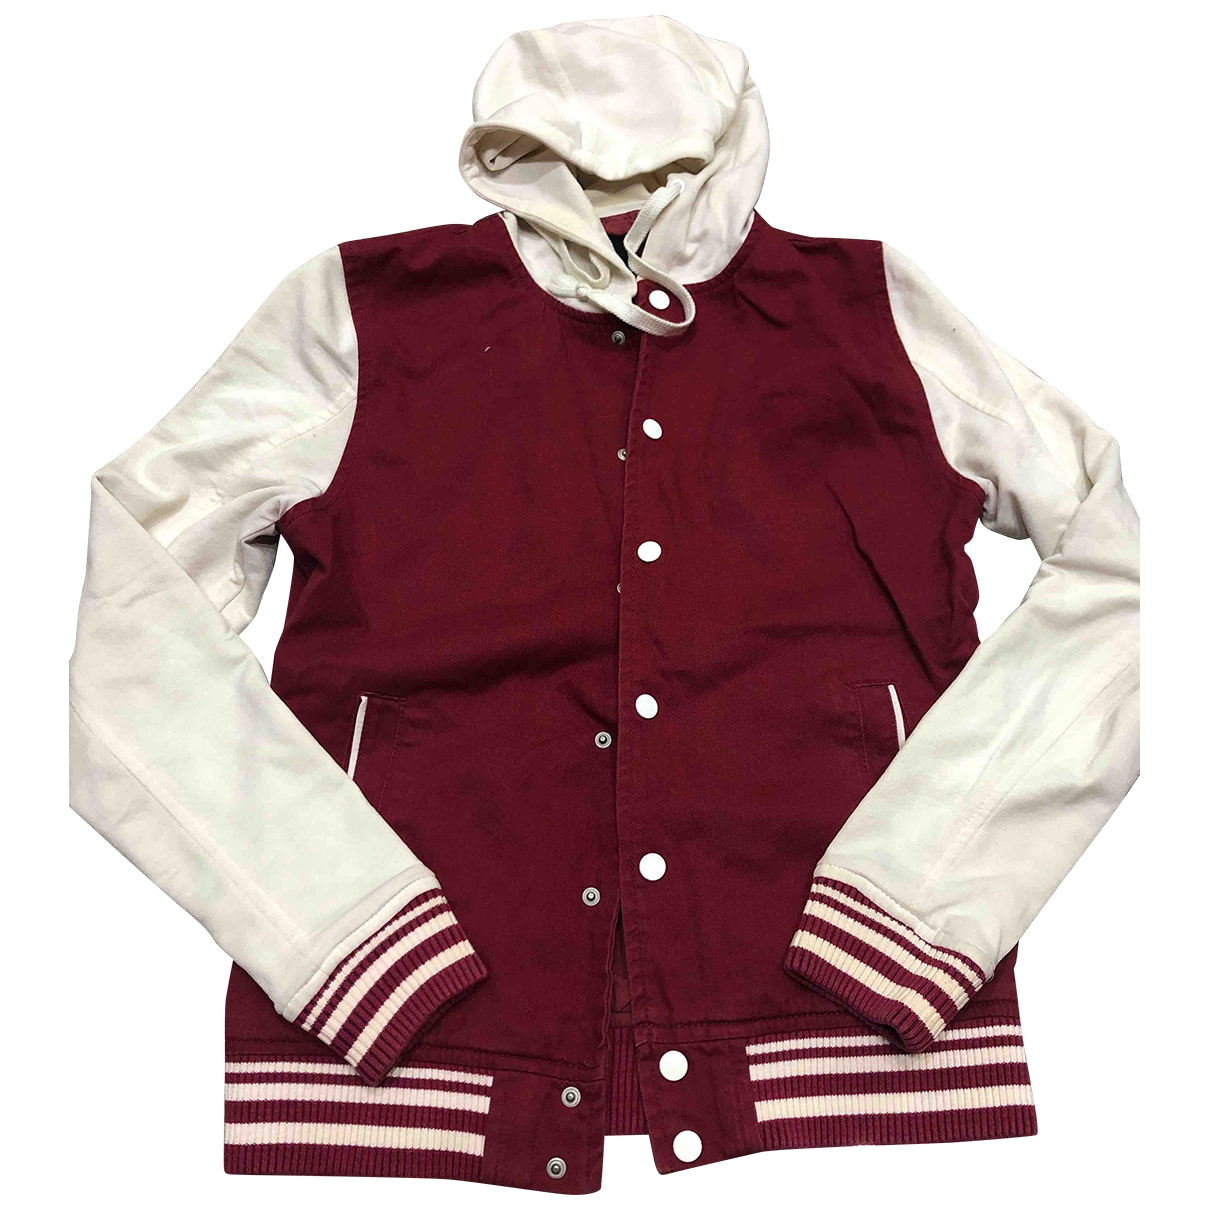 Asos \N Burgundy Cotton jacket  for Men S International